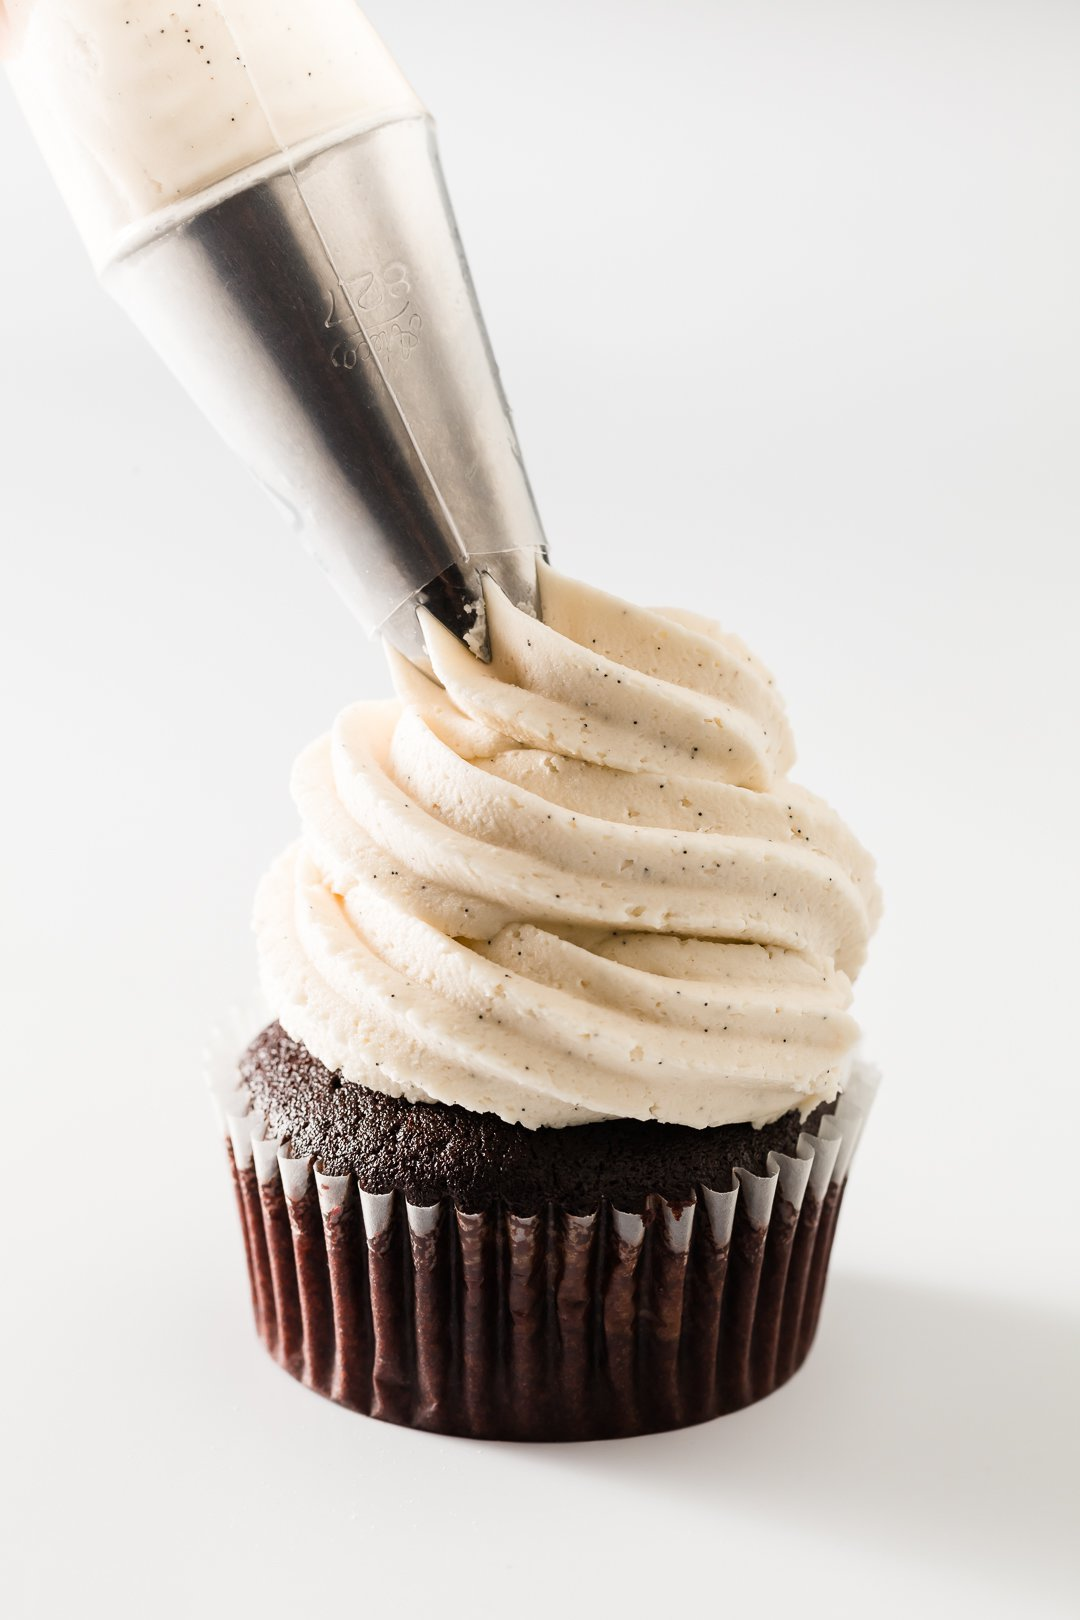 Vanilla Buttercream - How to Make Classic Vanilla Frosting